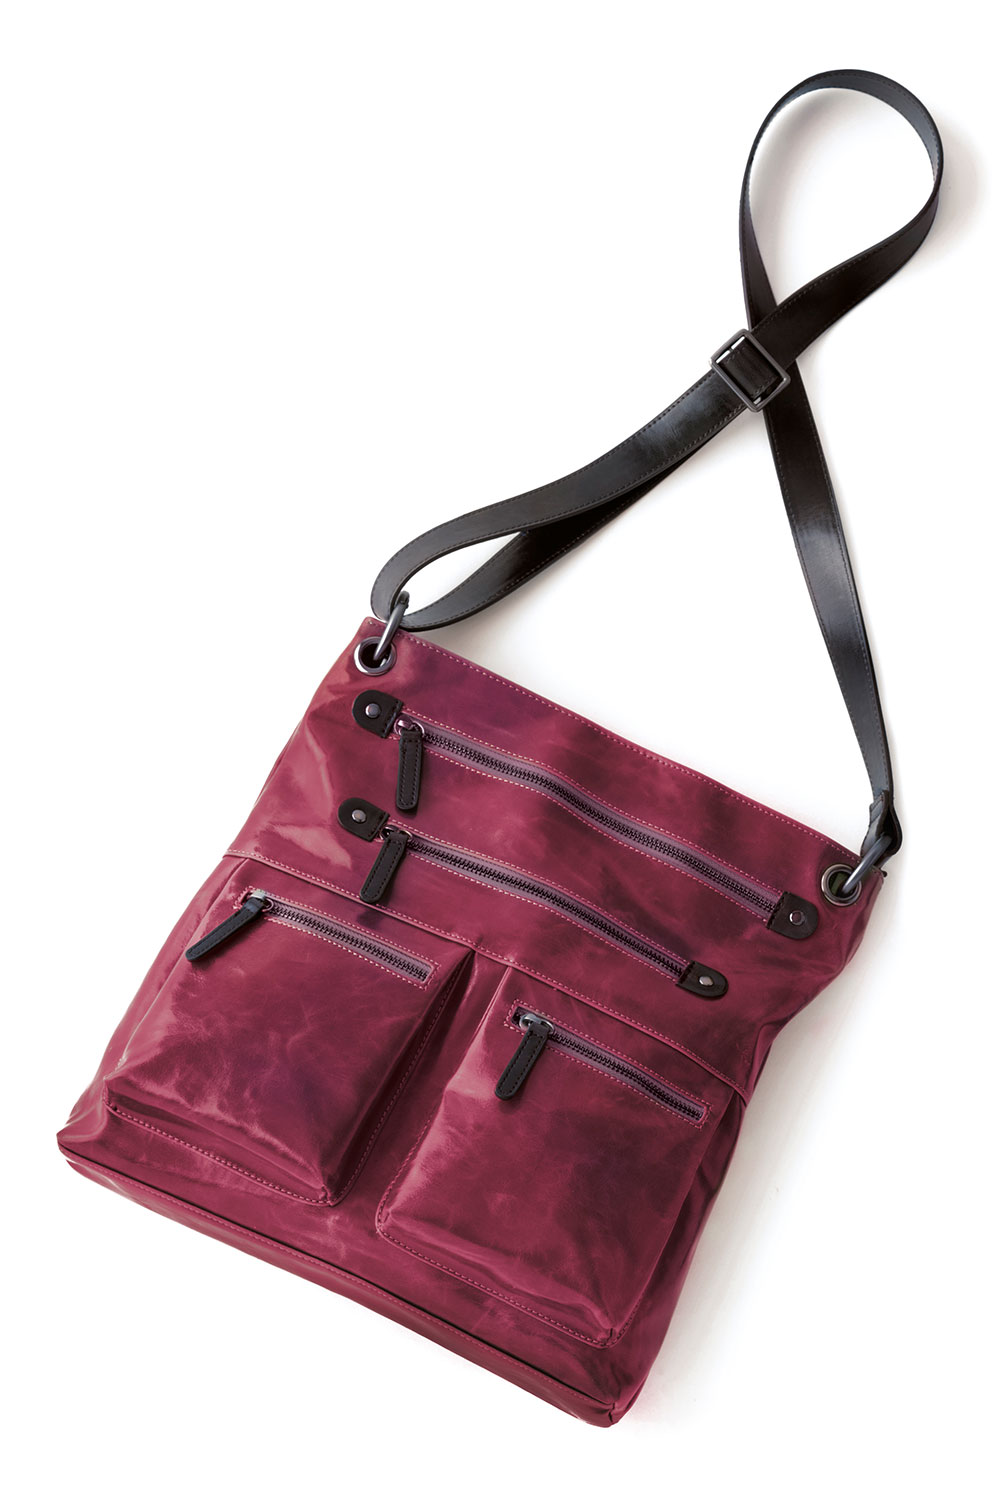 Shiraleah Handbags: Harper cross body bag - Berry